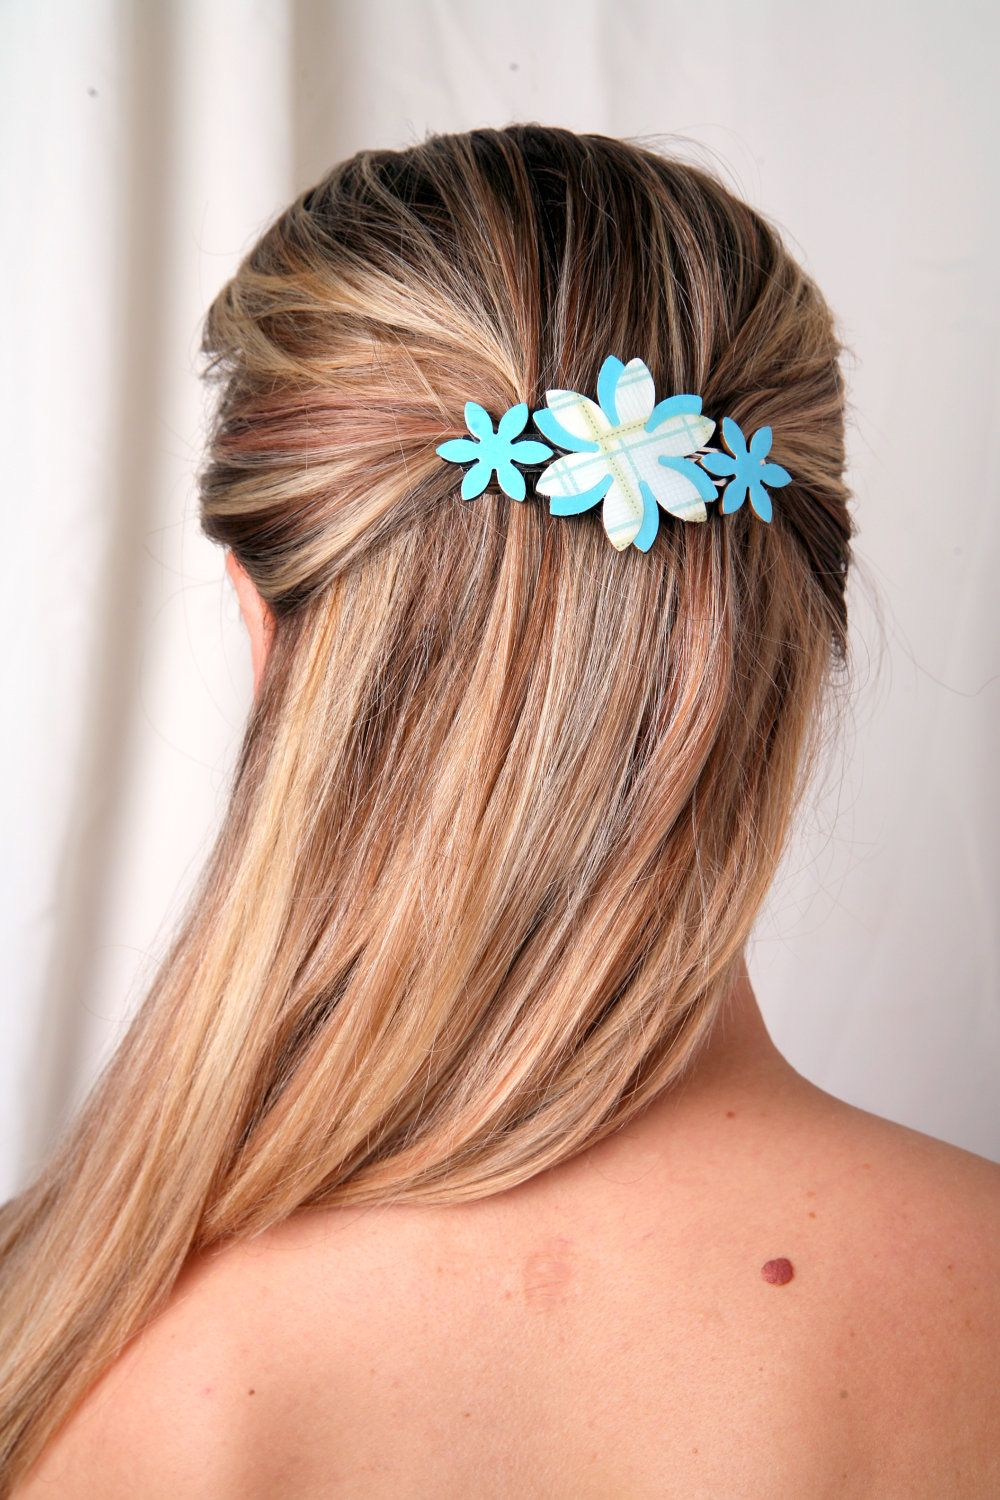 Sky blue hair claw, Sky blue accessory, Flower hair clip, Gift ideas for women, Gift ideas for teens, Blue barrette, Blue clip, Womens gifts - pinned by pin4etsy.com